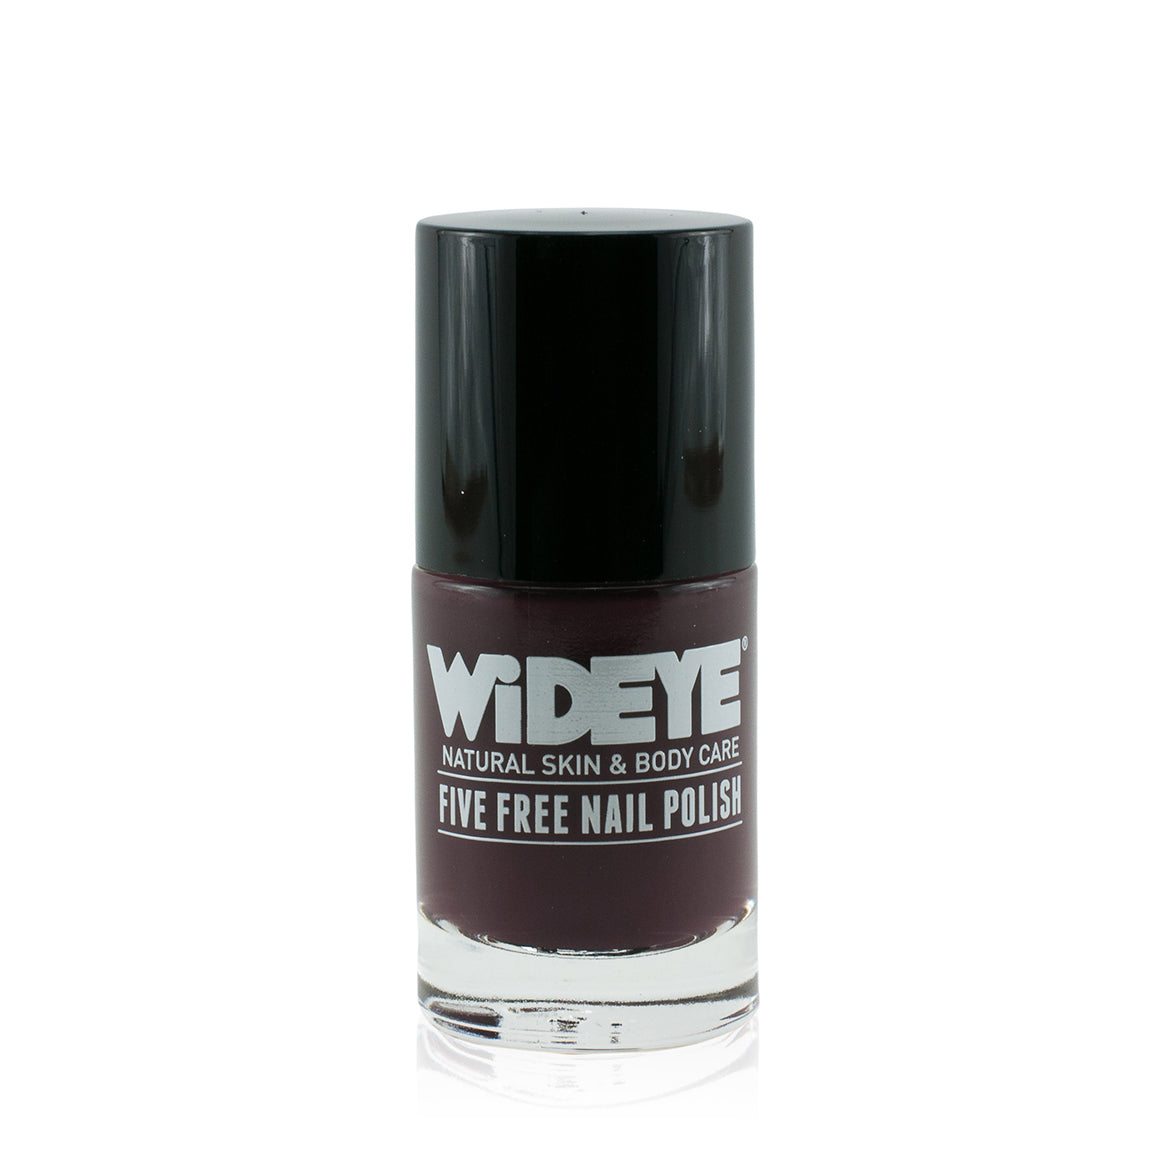 Dark brown nail varnish in glass bottle by WiDEYE